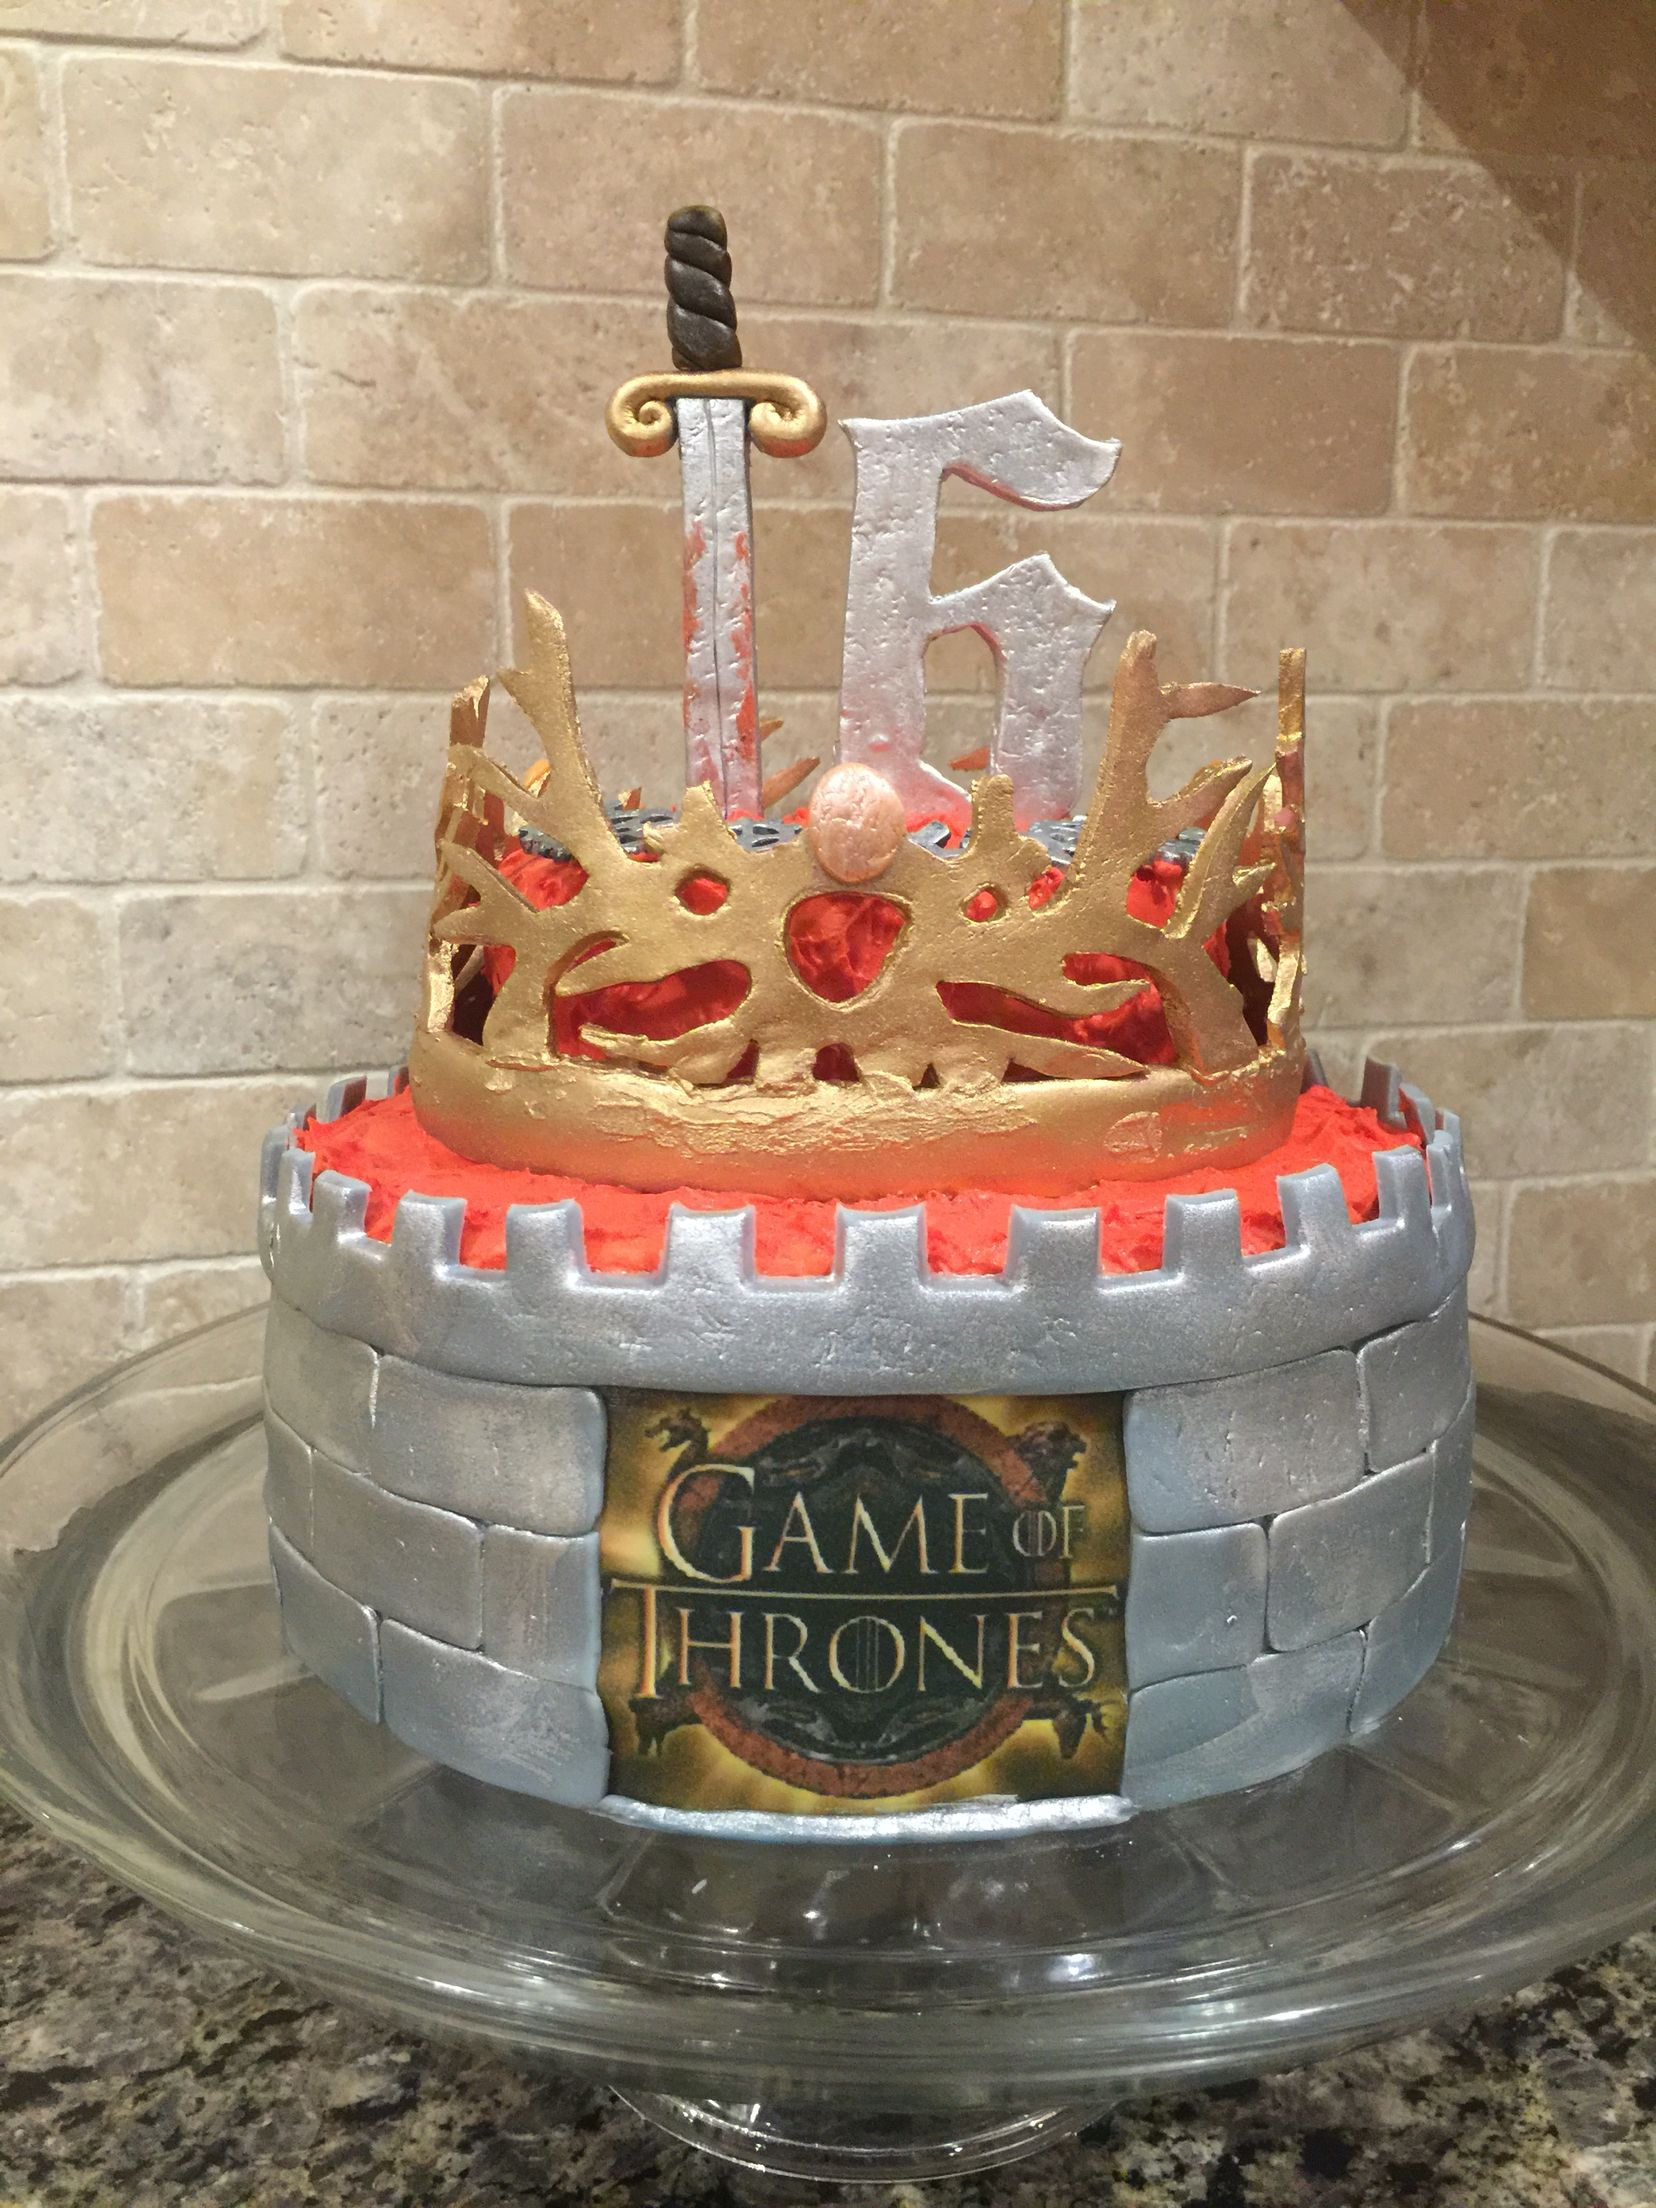 game of thrones cake by marcia gonzalez marcia gonzalez. Black Bedroom Furniture Sets. Home Design Ideas